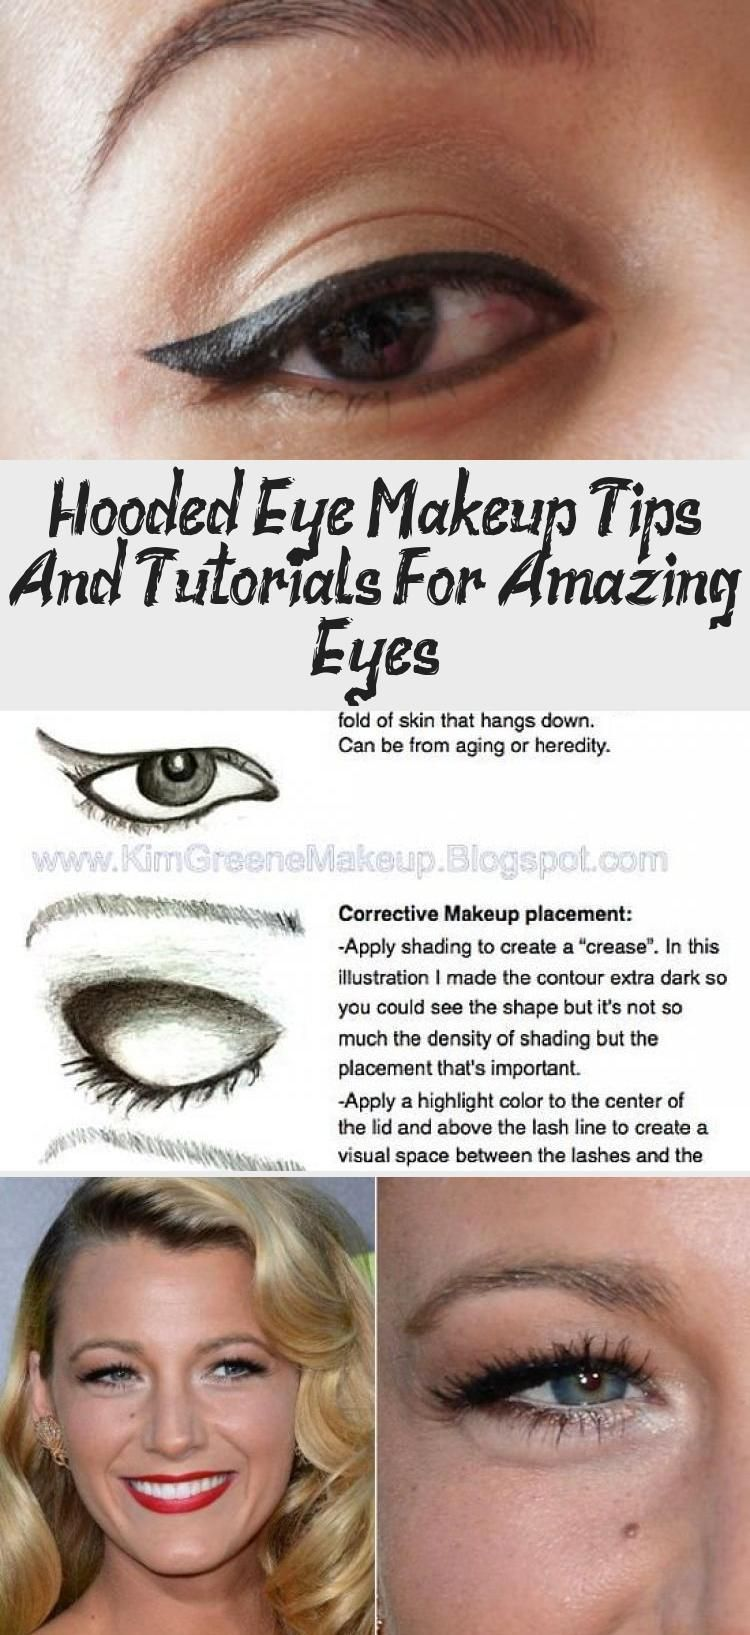 Hooded Eye Makeup Tips And Tutorials For Amazing Eyes In 2020